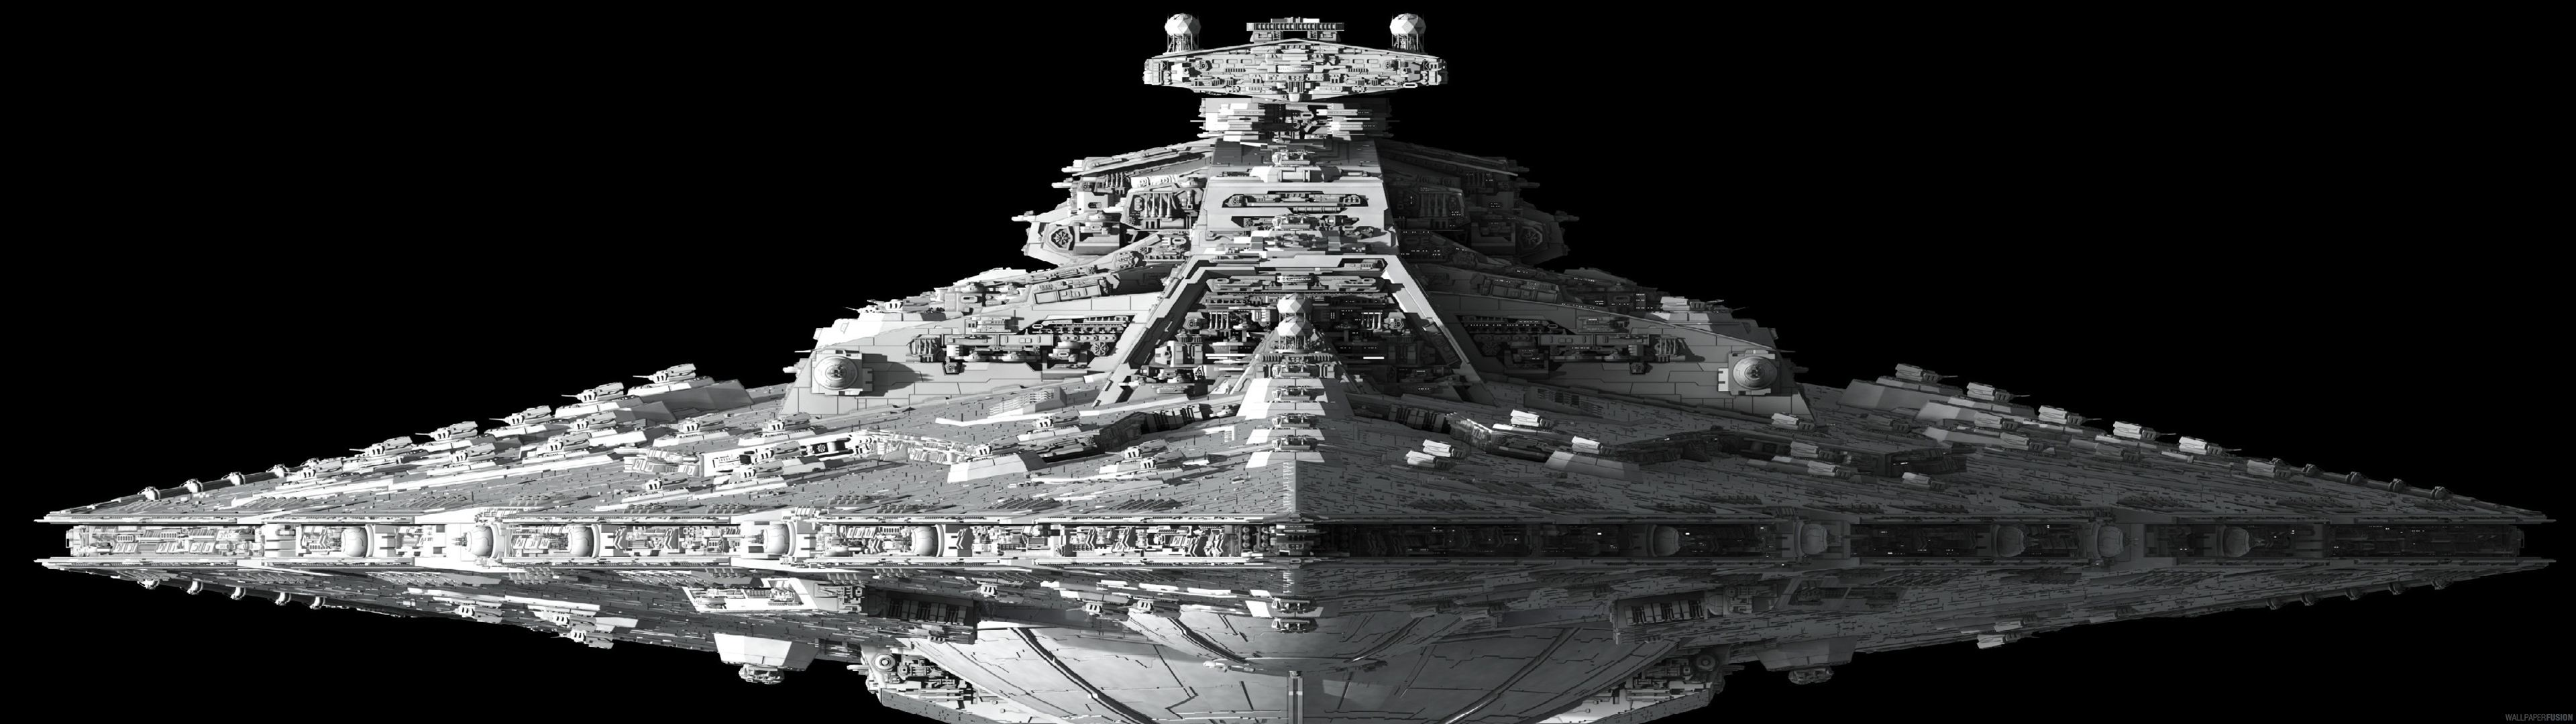 Free Download Dual Monitor Star Destroyer Wallpaper Comment 136 Added By 3840x1080 For Your Desktop Mobile Tablet Explore 47 Triple Monitor Star Wars Wallpaper Windows 10 Triple Monitor Wallpaper